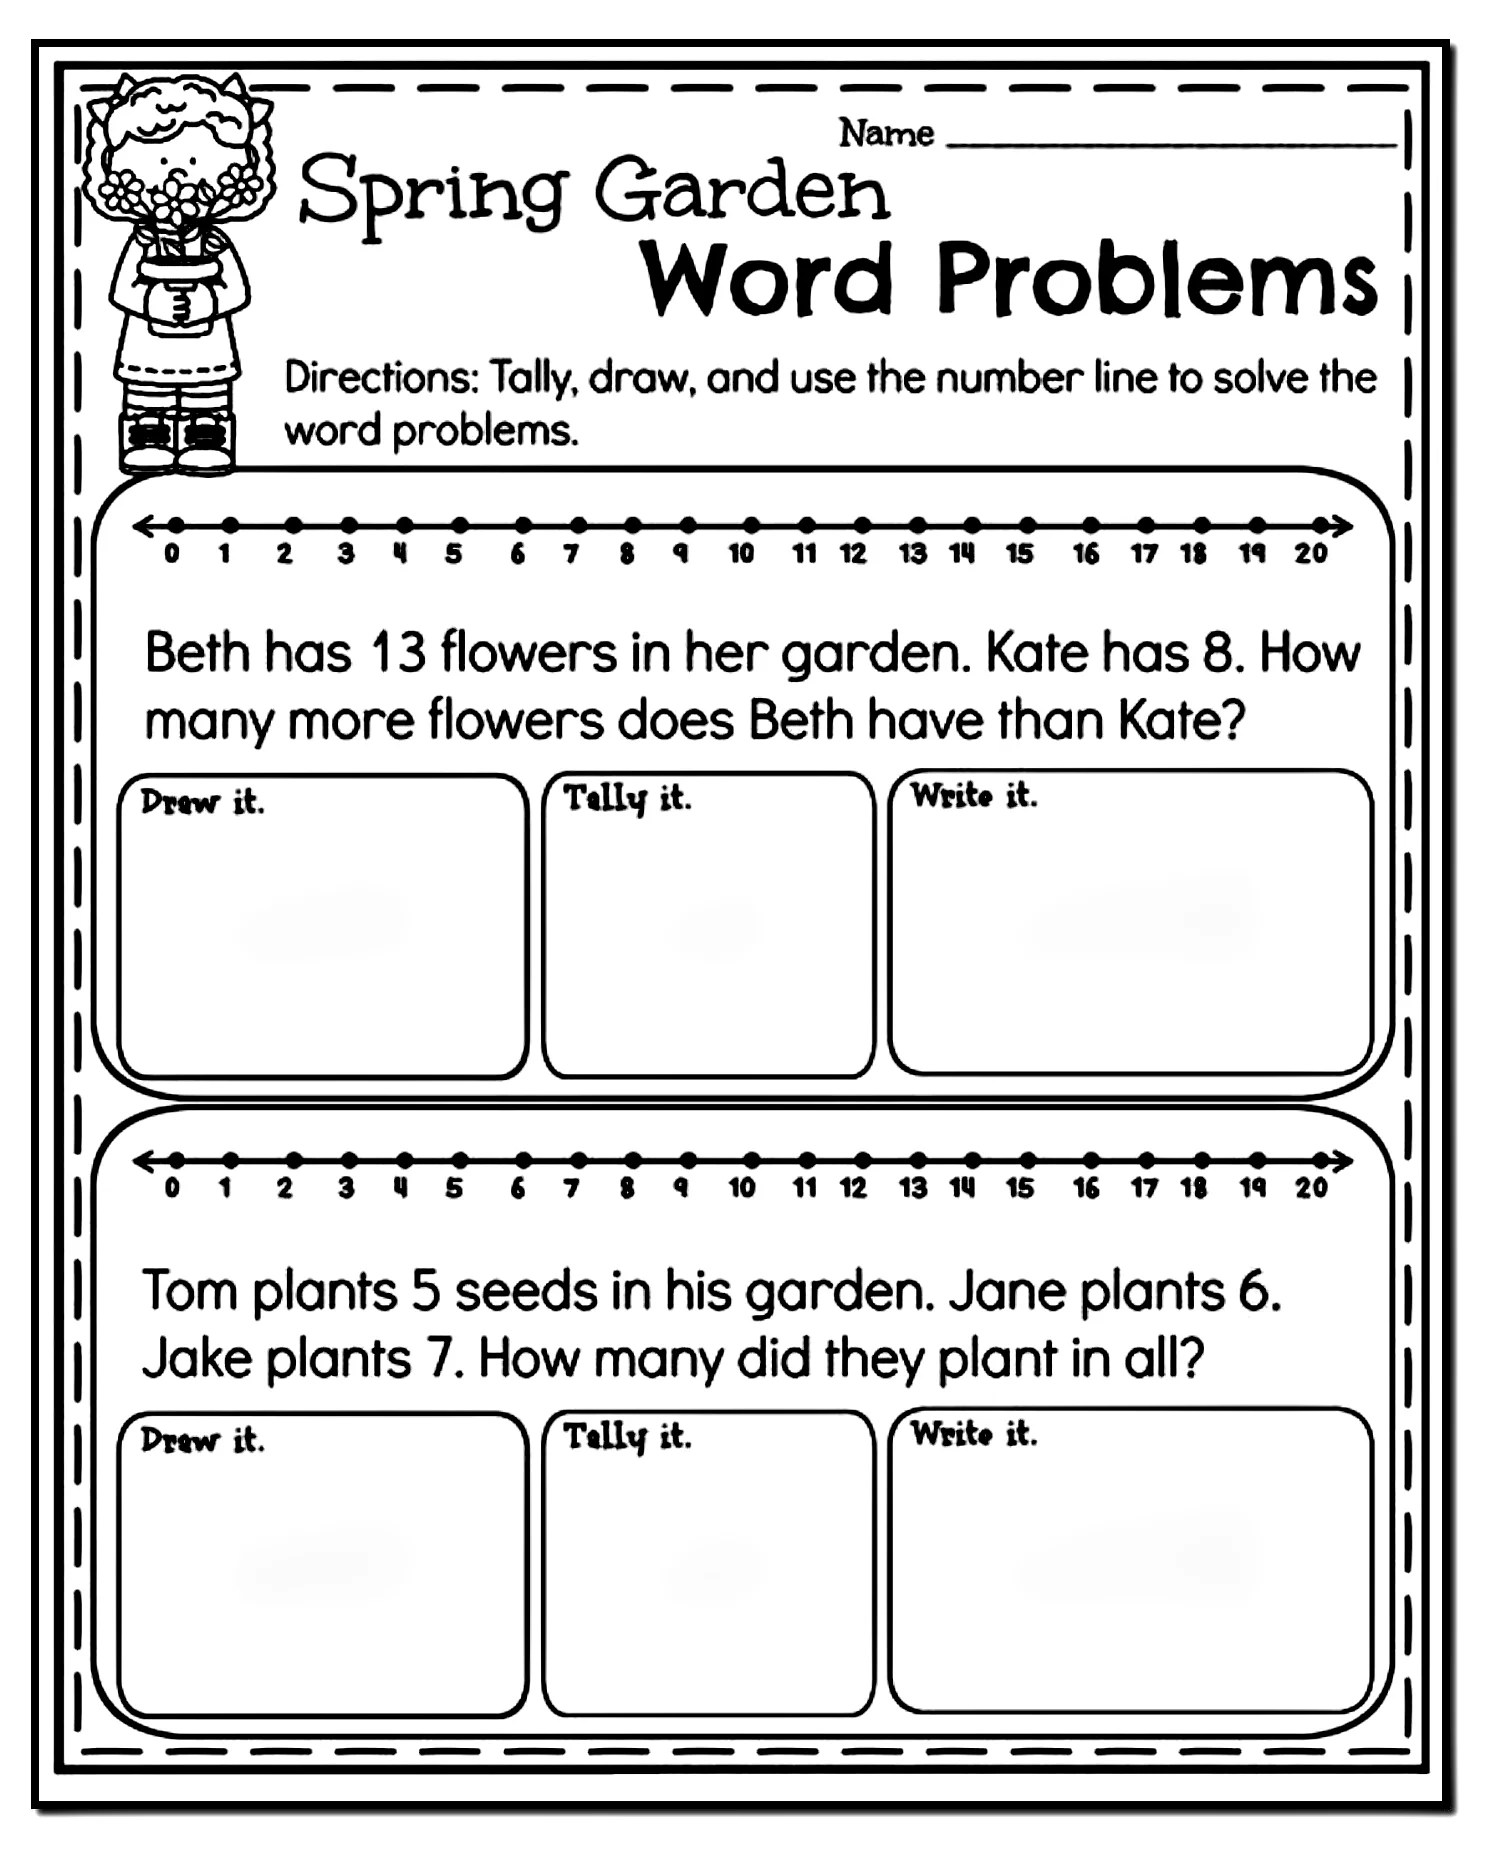 hight resolution of 10 Amazing 1st Grade Math Word Problems Worksheets Samples   Worksheet Hero